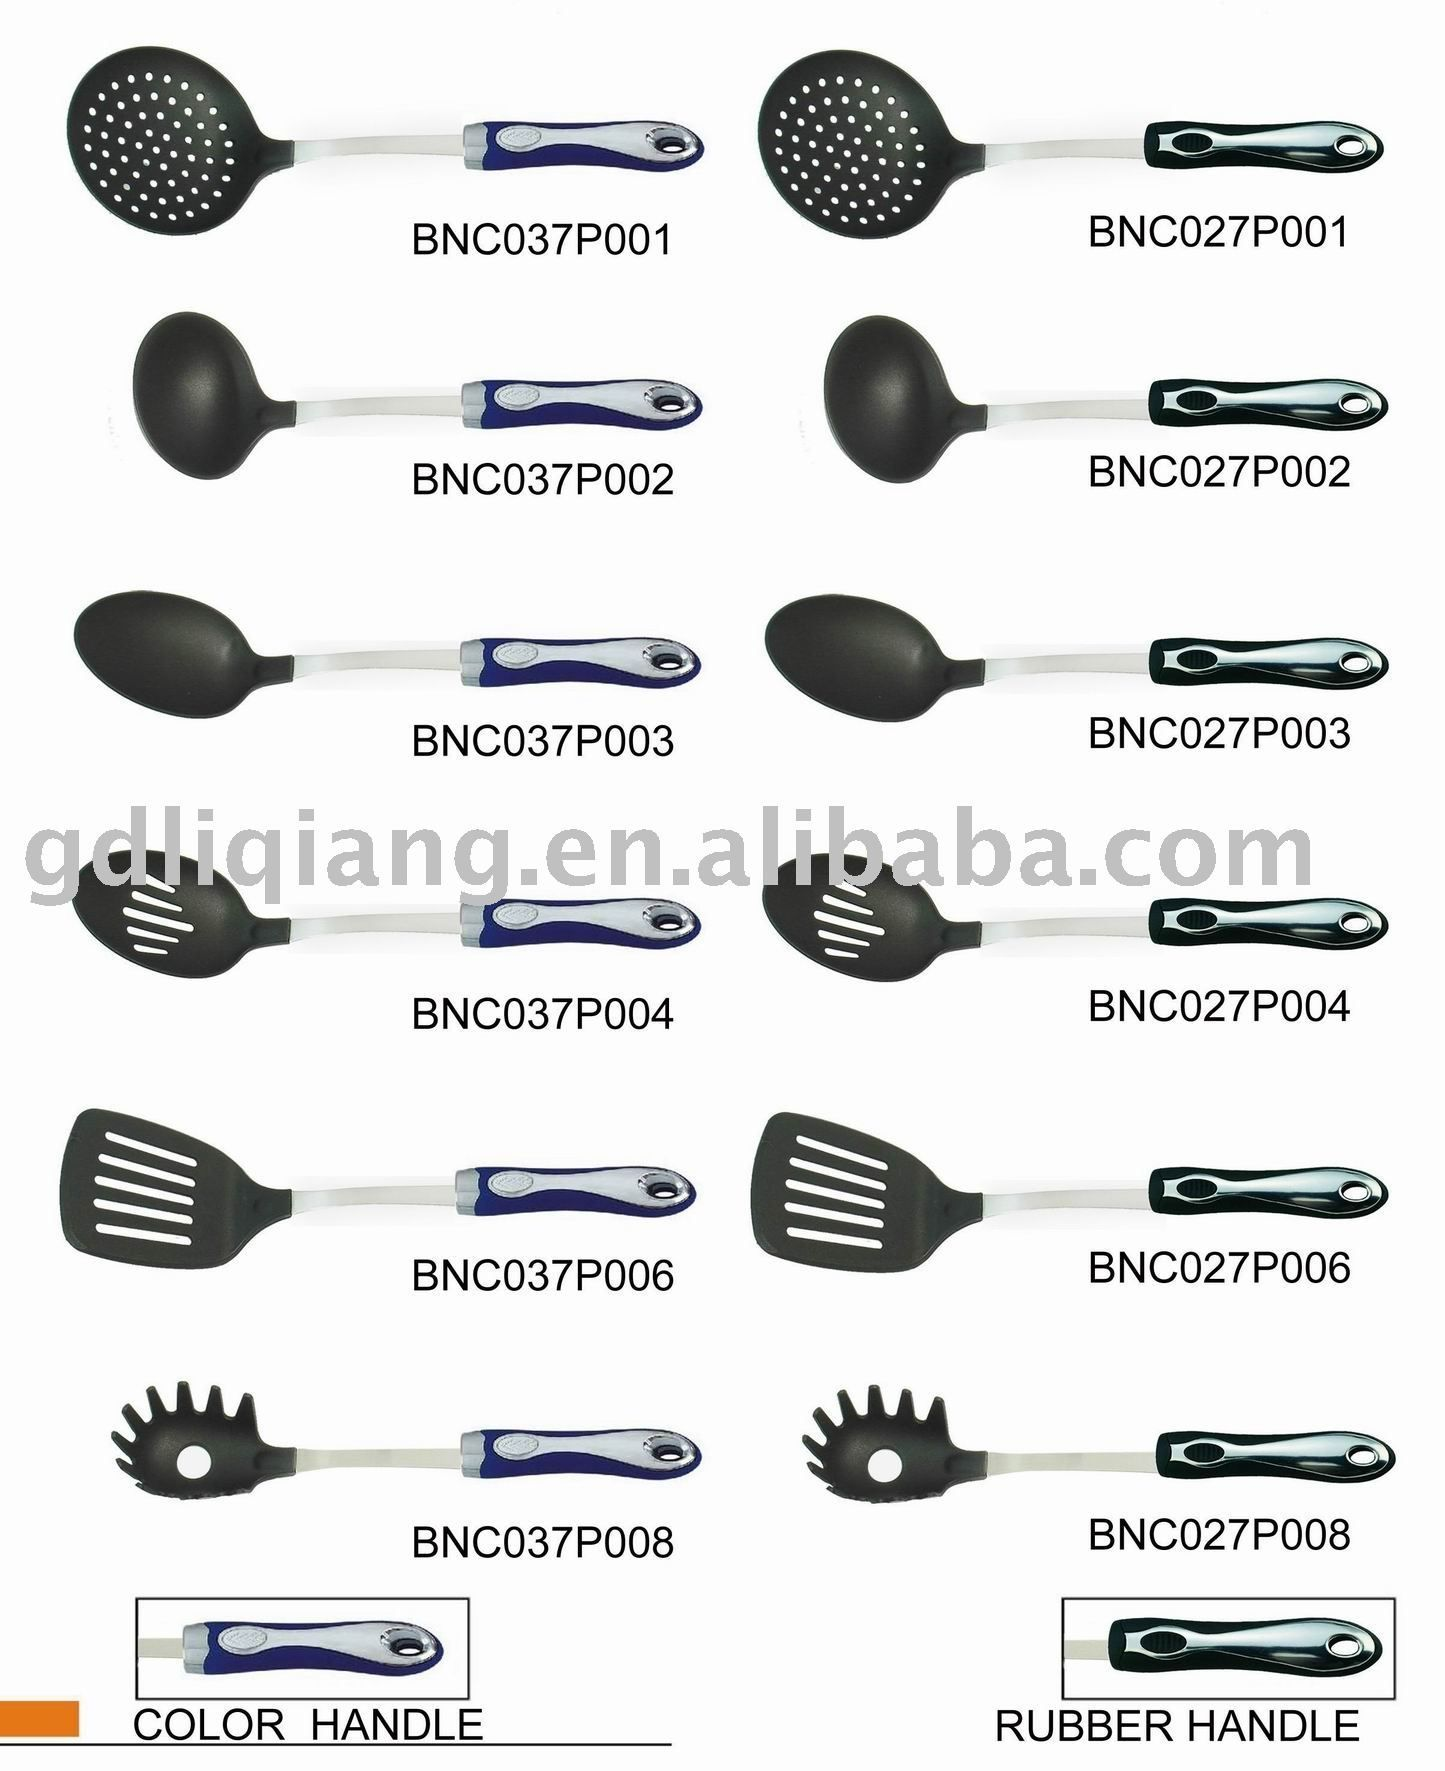 Superb Kitchen Utensils Pictures And Names And Their Uses   Dishwashing Service Design Ideas